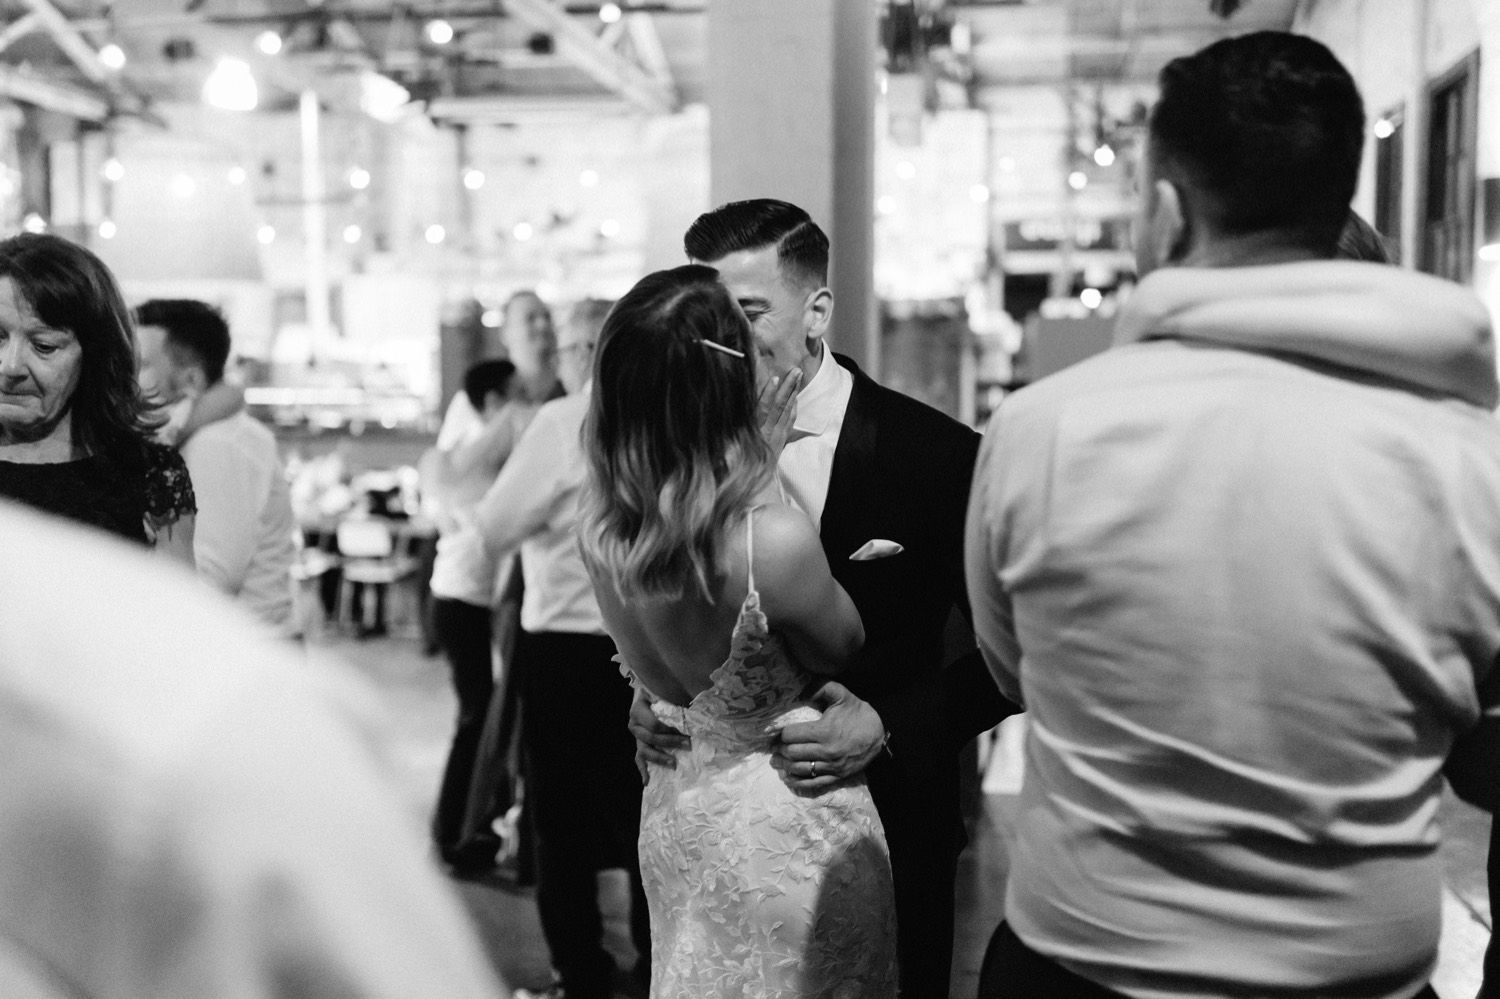 couple sharing a passionate kiss on a packed dancefloor